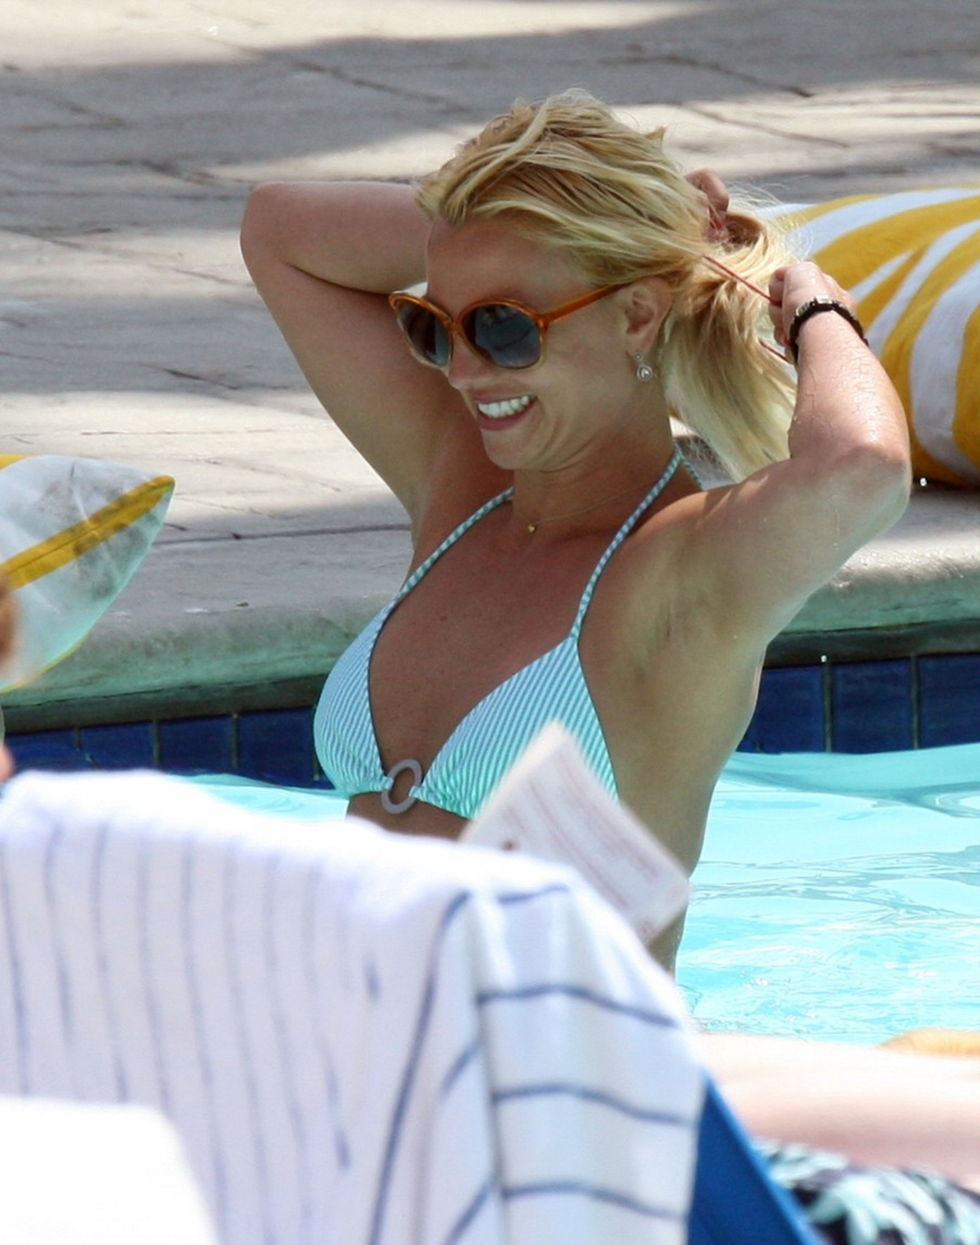 britney-spears-bikini-candids-by-the-pool-in-marina-del-rey-01